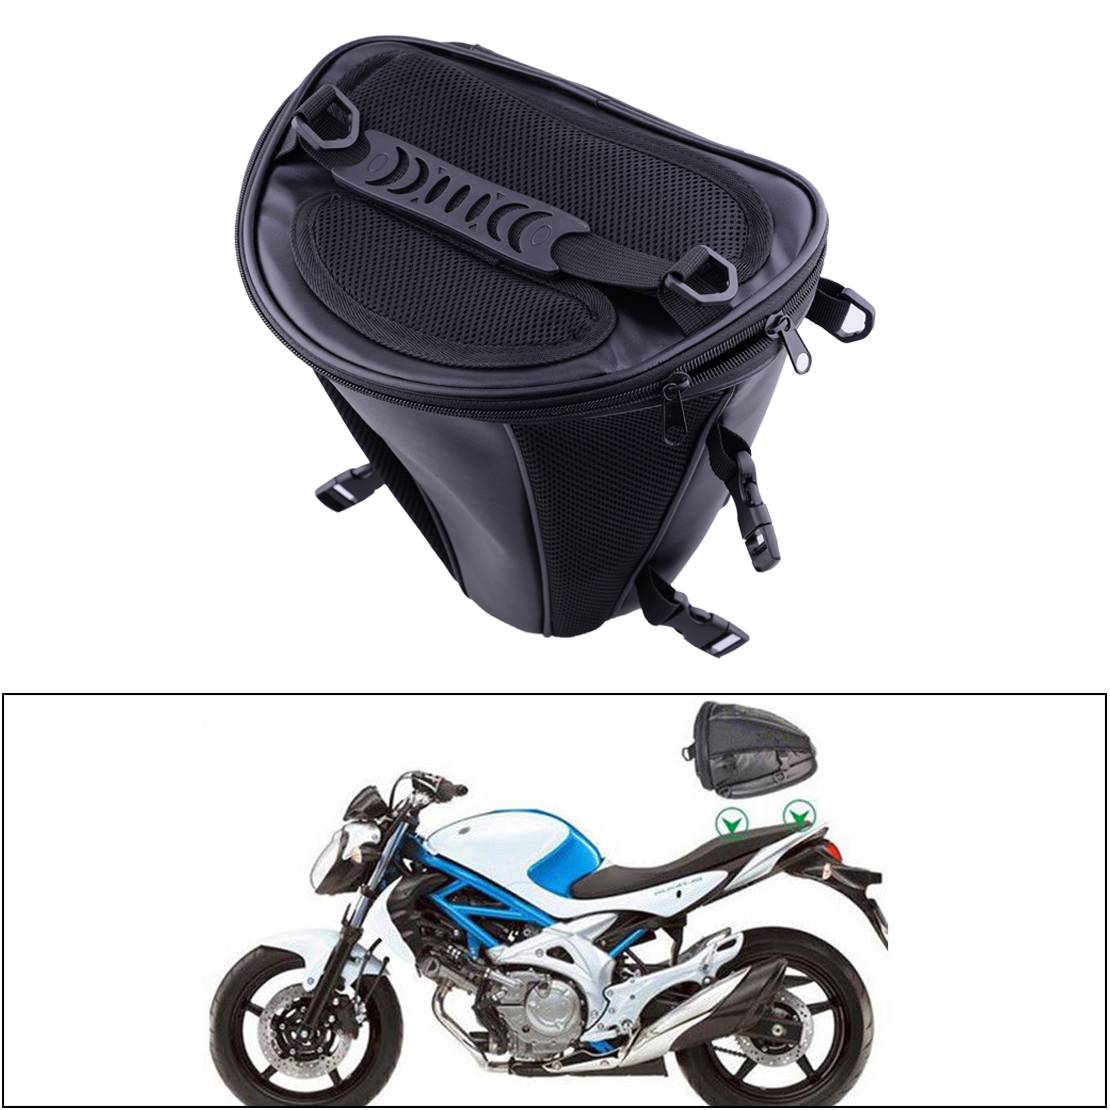 CITALL Black Waterproof Microfiber Tail Bag Back Seat Storage Carry Hand Shoulder Saddlebags for Motorcycle Dirt Bike Dual Sport